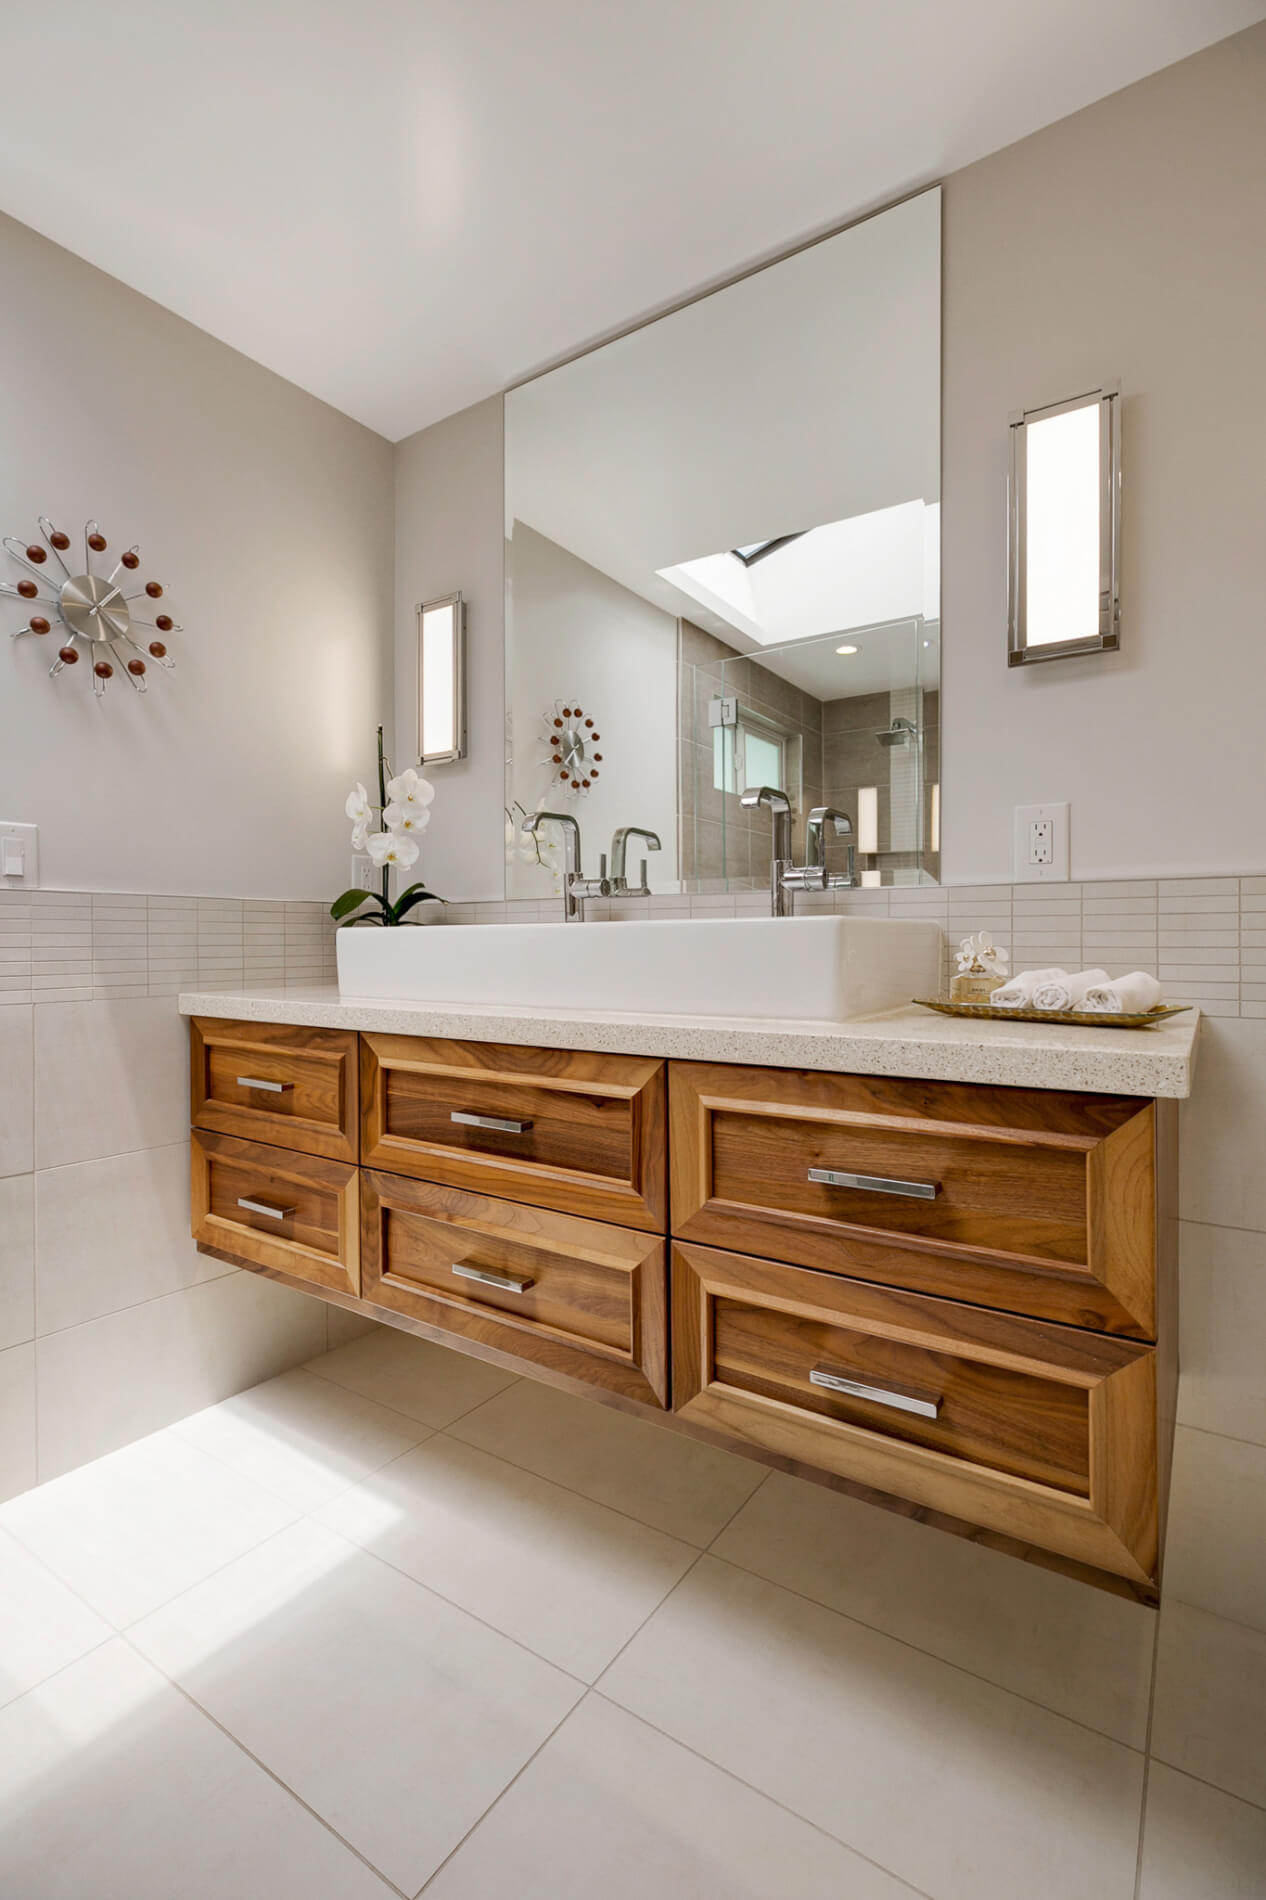 Master Bathroom Floating Vanity, Natural Wood Master Bathroom Vanity, Master Bathroom Home Design